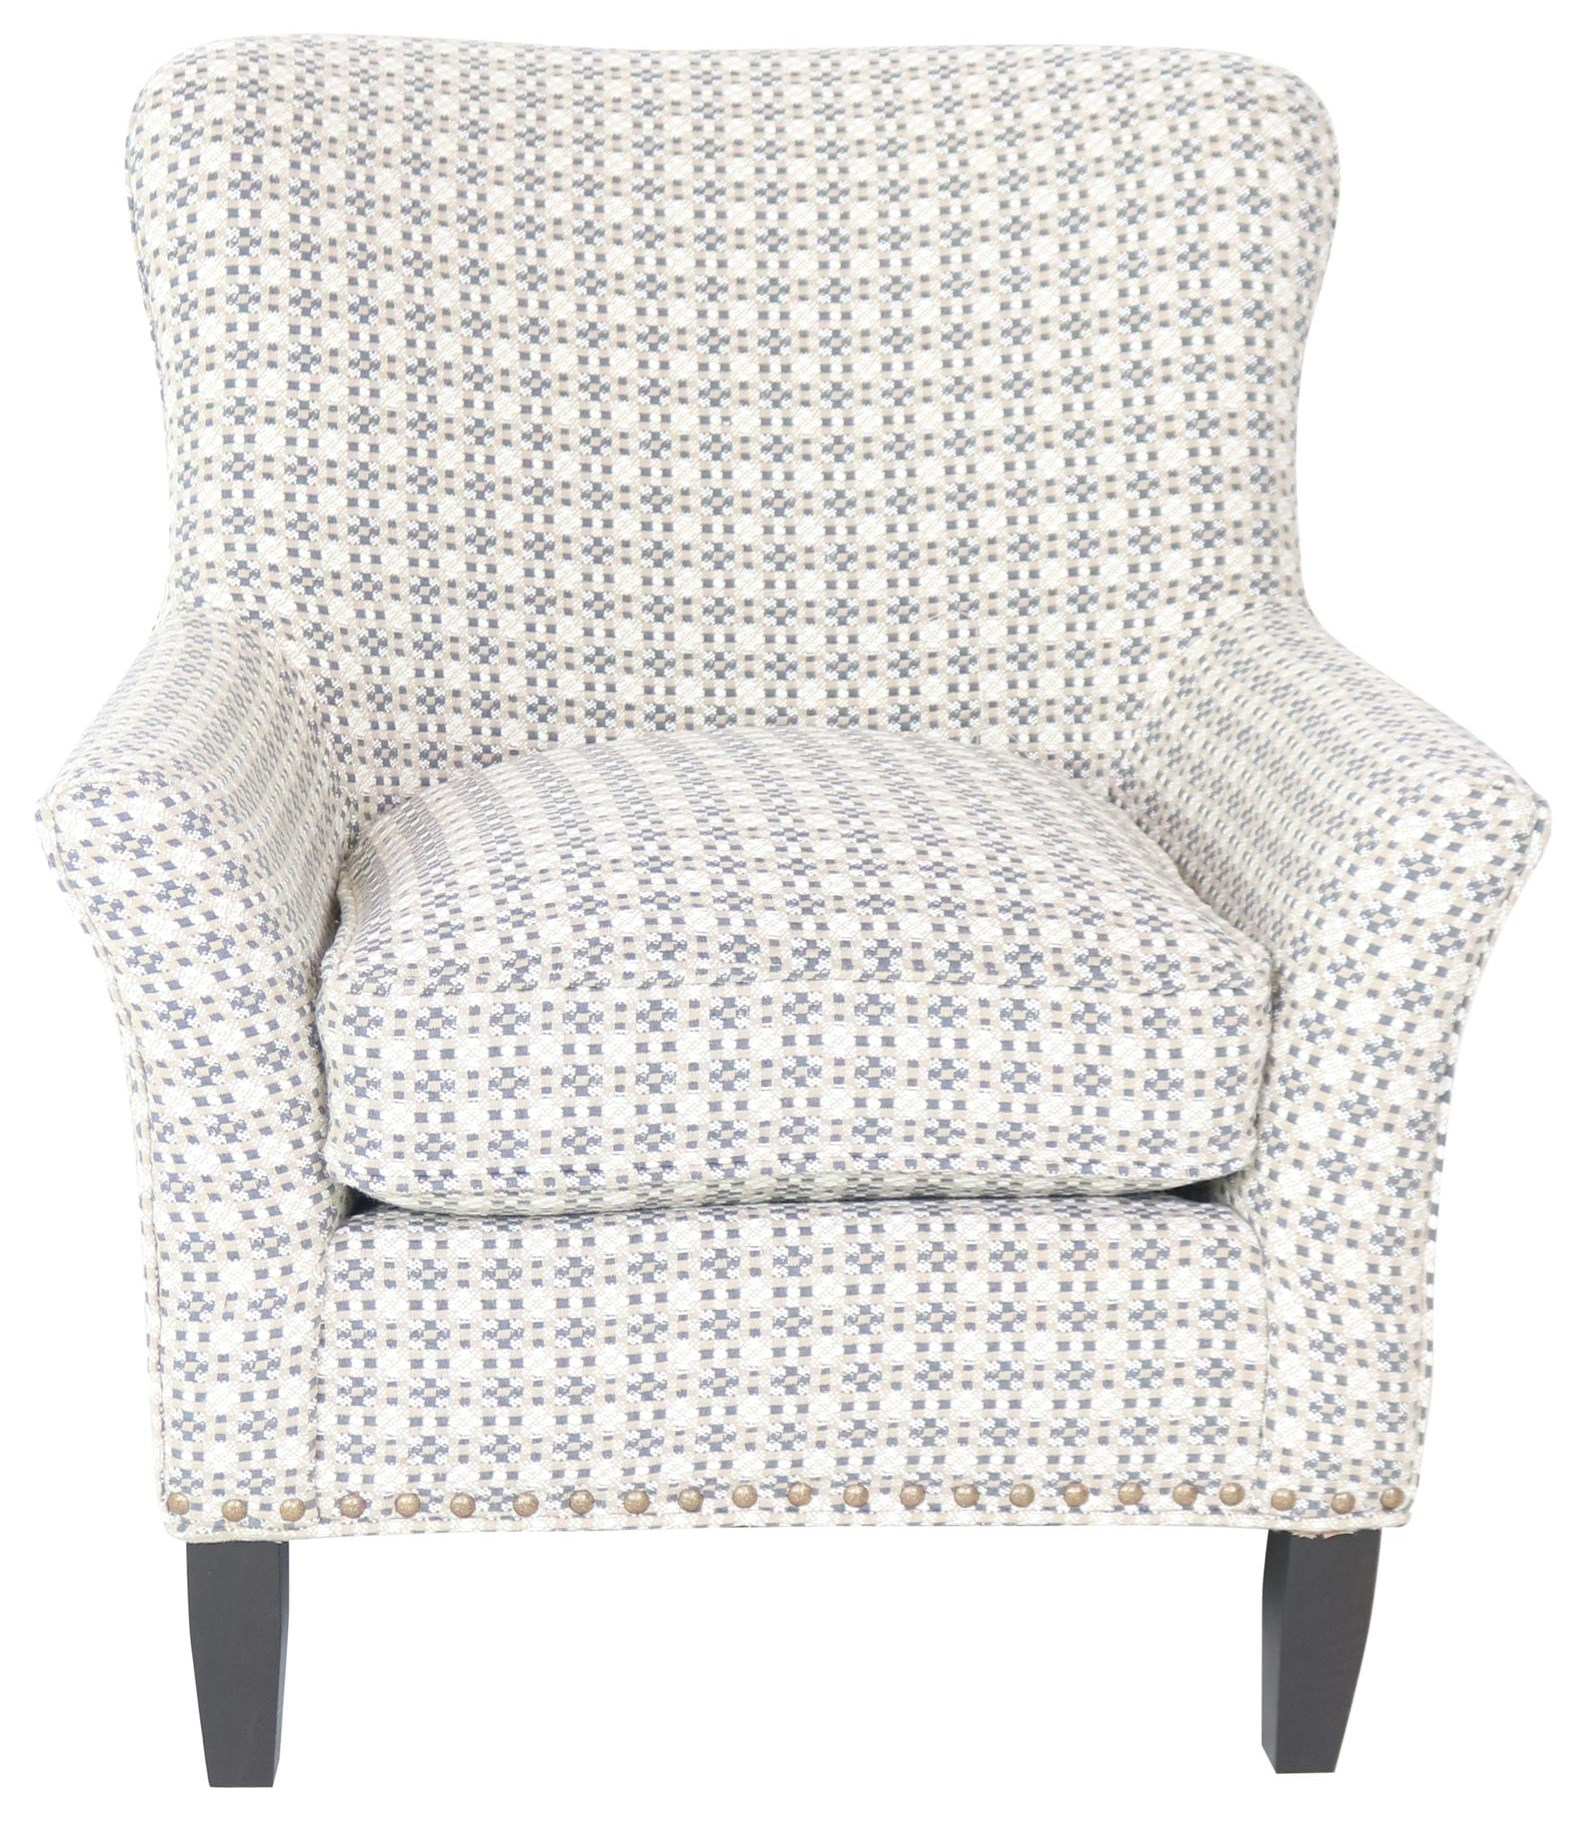 091310 Chair by Cozi Life Upholstery at Sprintz Furniture